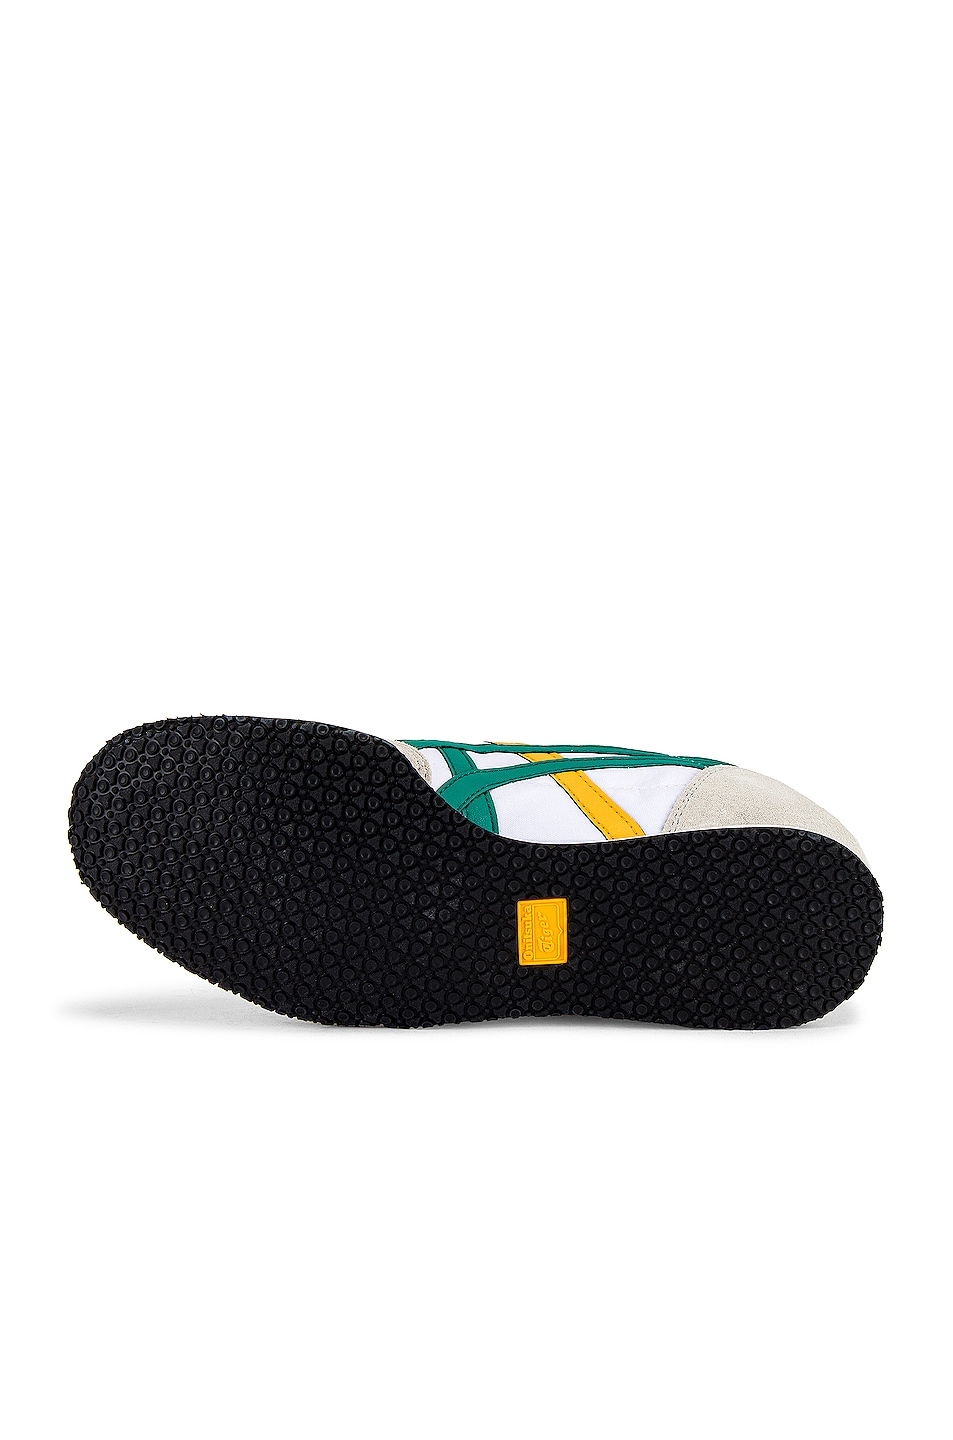 Image 6 of Onitsuka Tiger Serrano in White & Jelly Bean